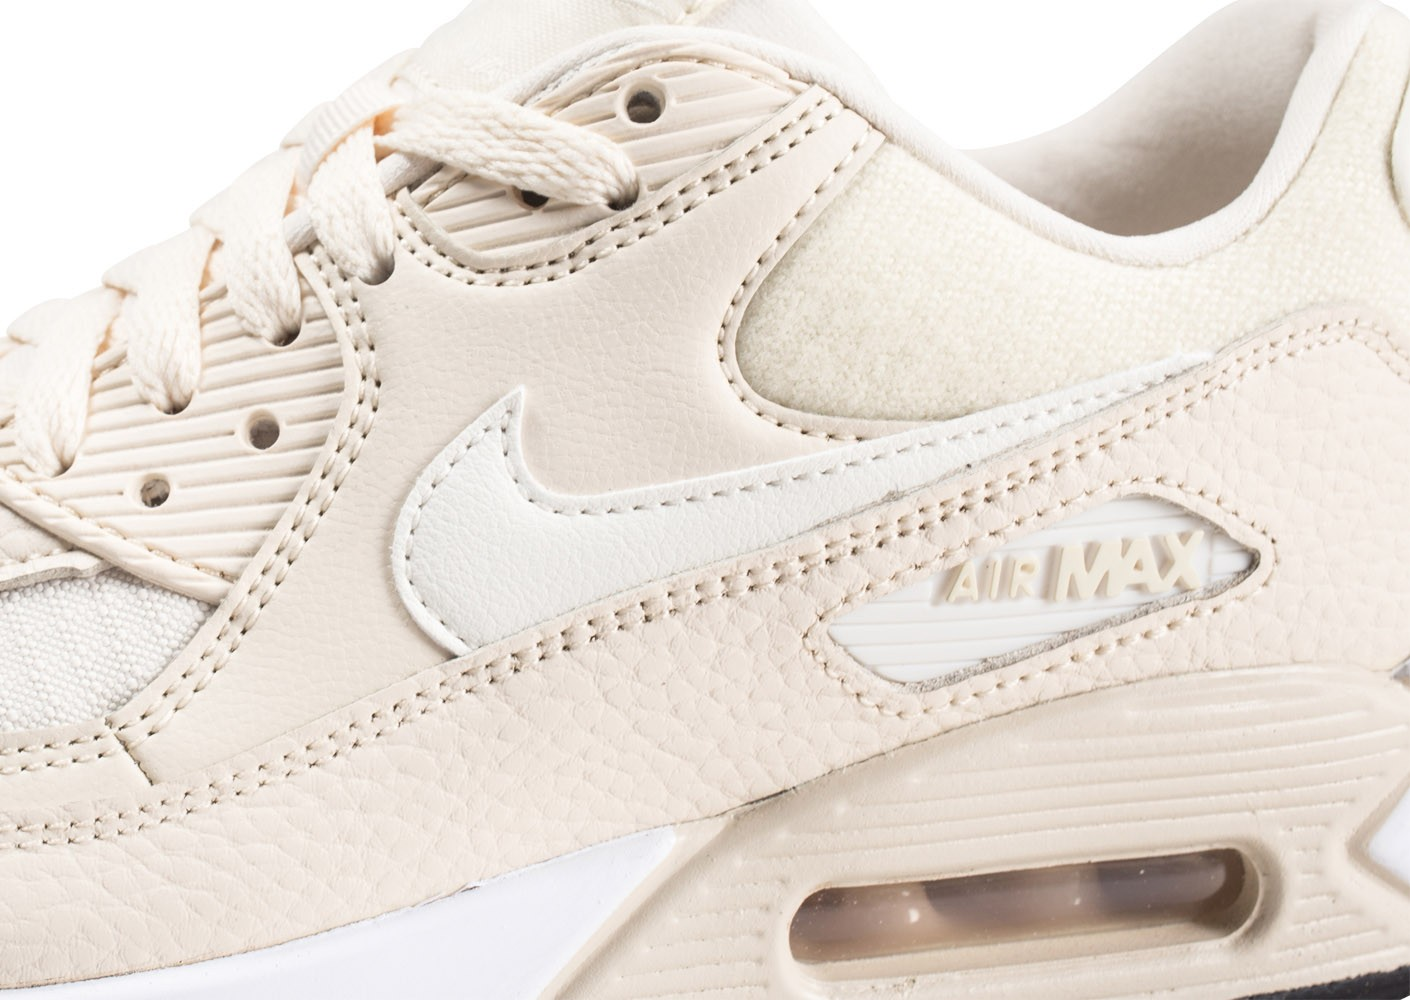 Nike Air Max 90 beige et blanche femme - Chaussures Baskets ...